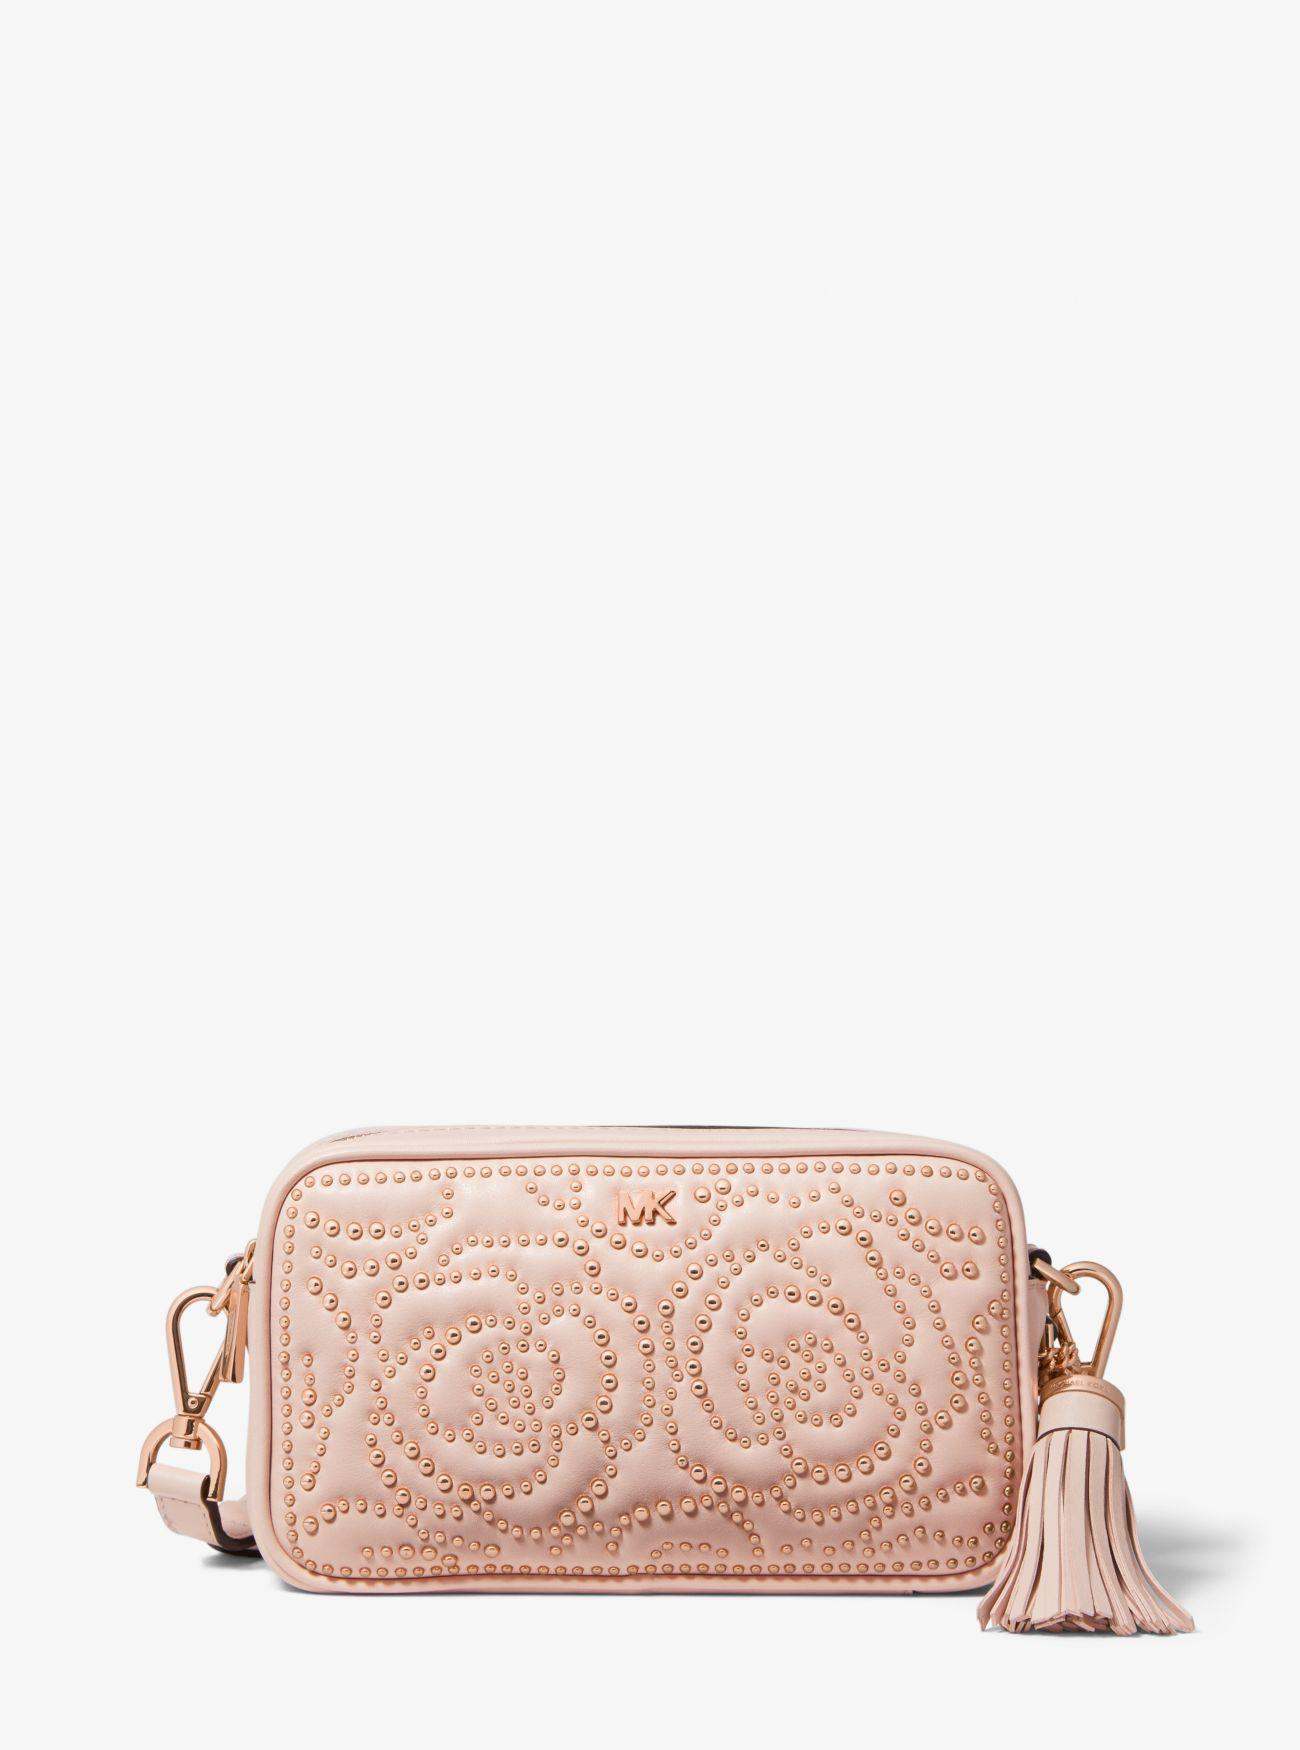 28e683ba1649 Michael Kors Michael Quilted Stud Camera Bag in Pink - Lyst